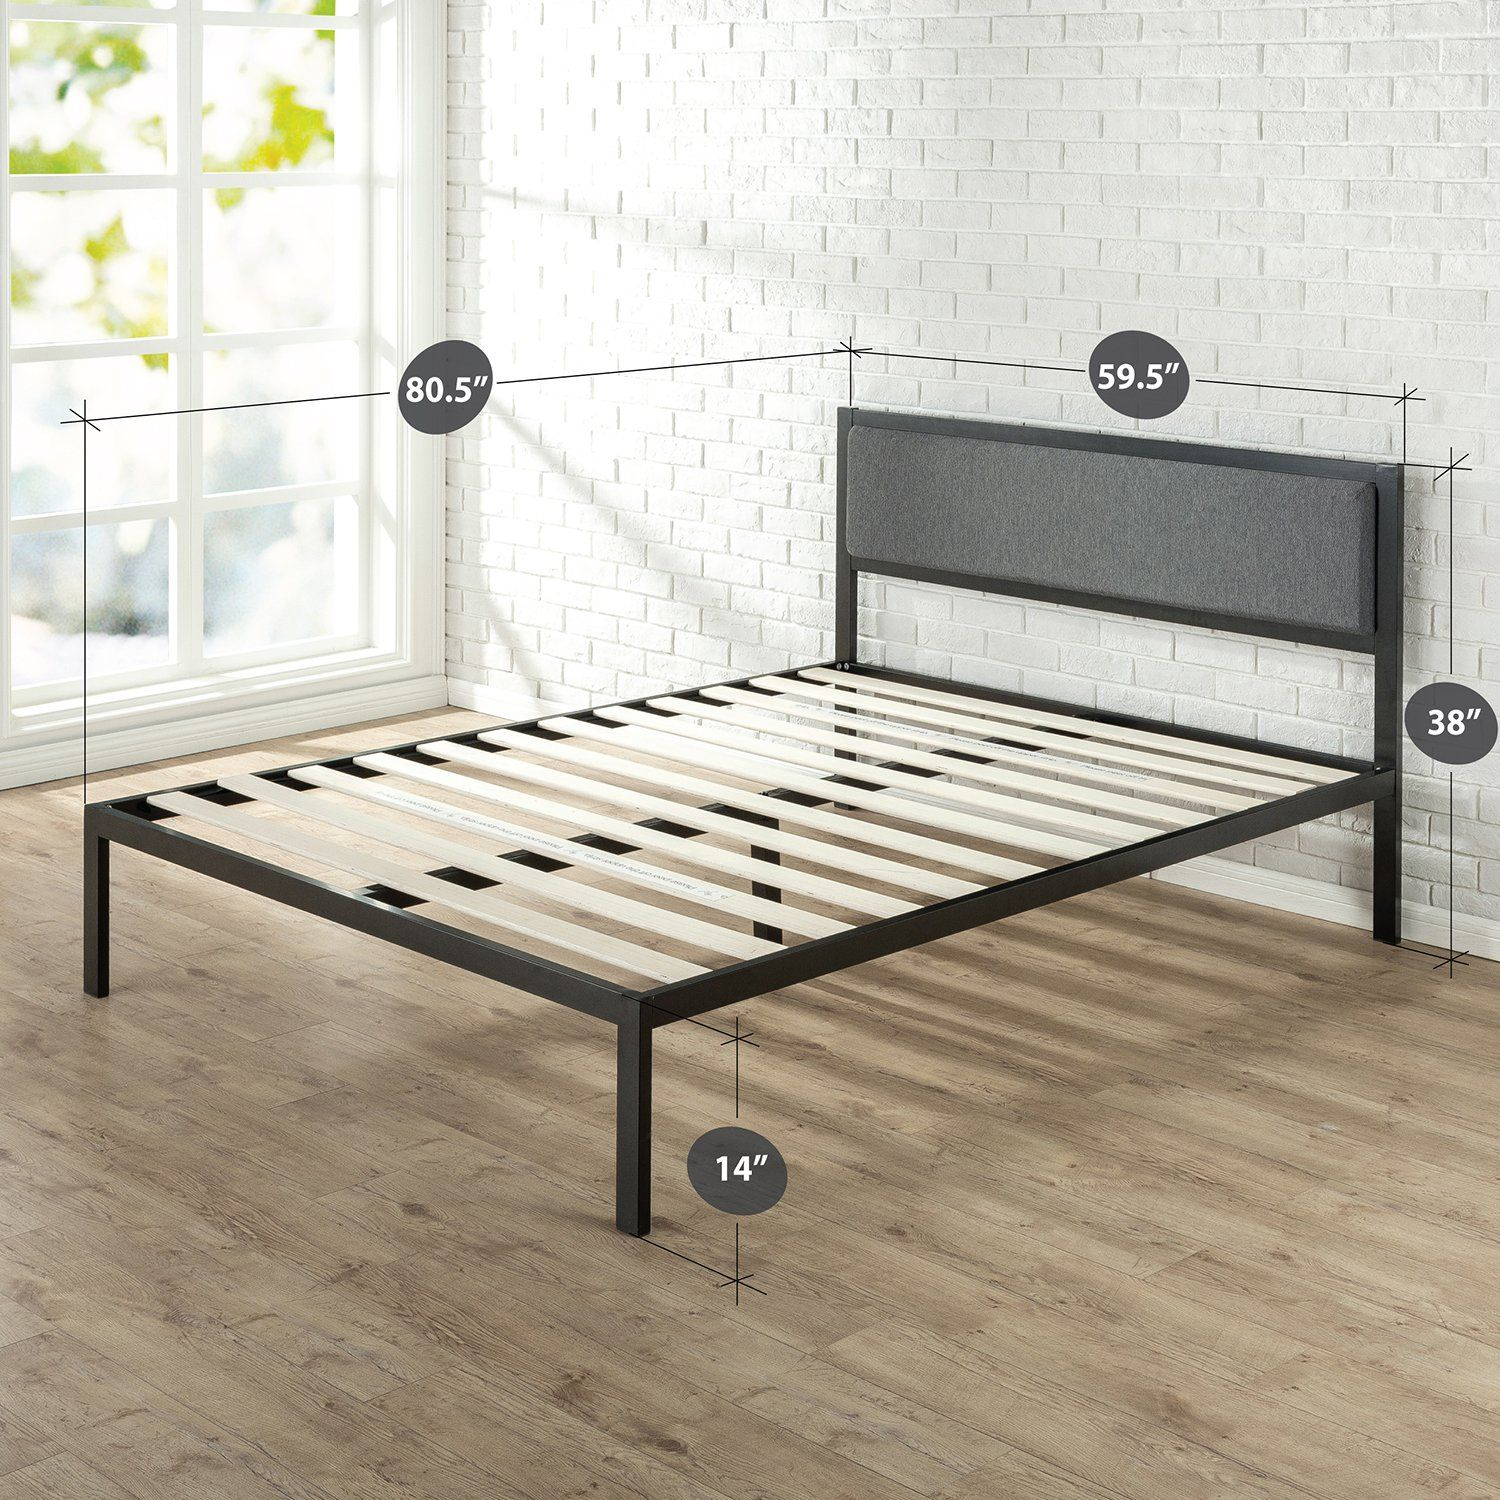 Zinus inch platform metal bed frame with upholstered headboard